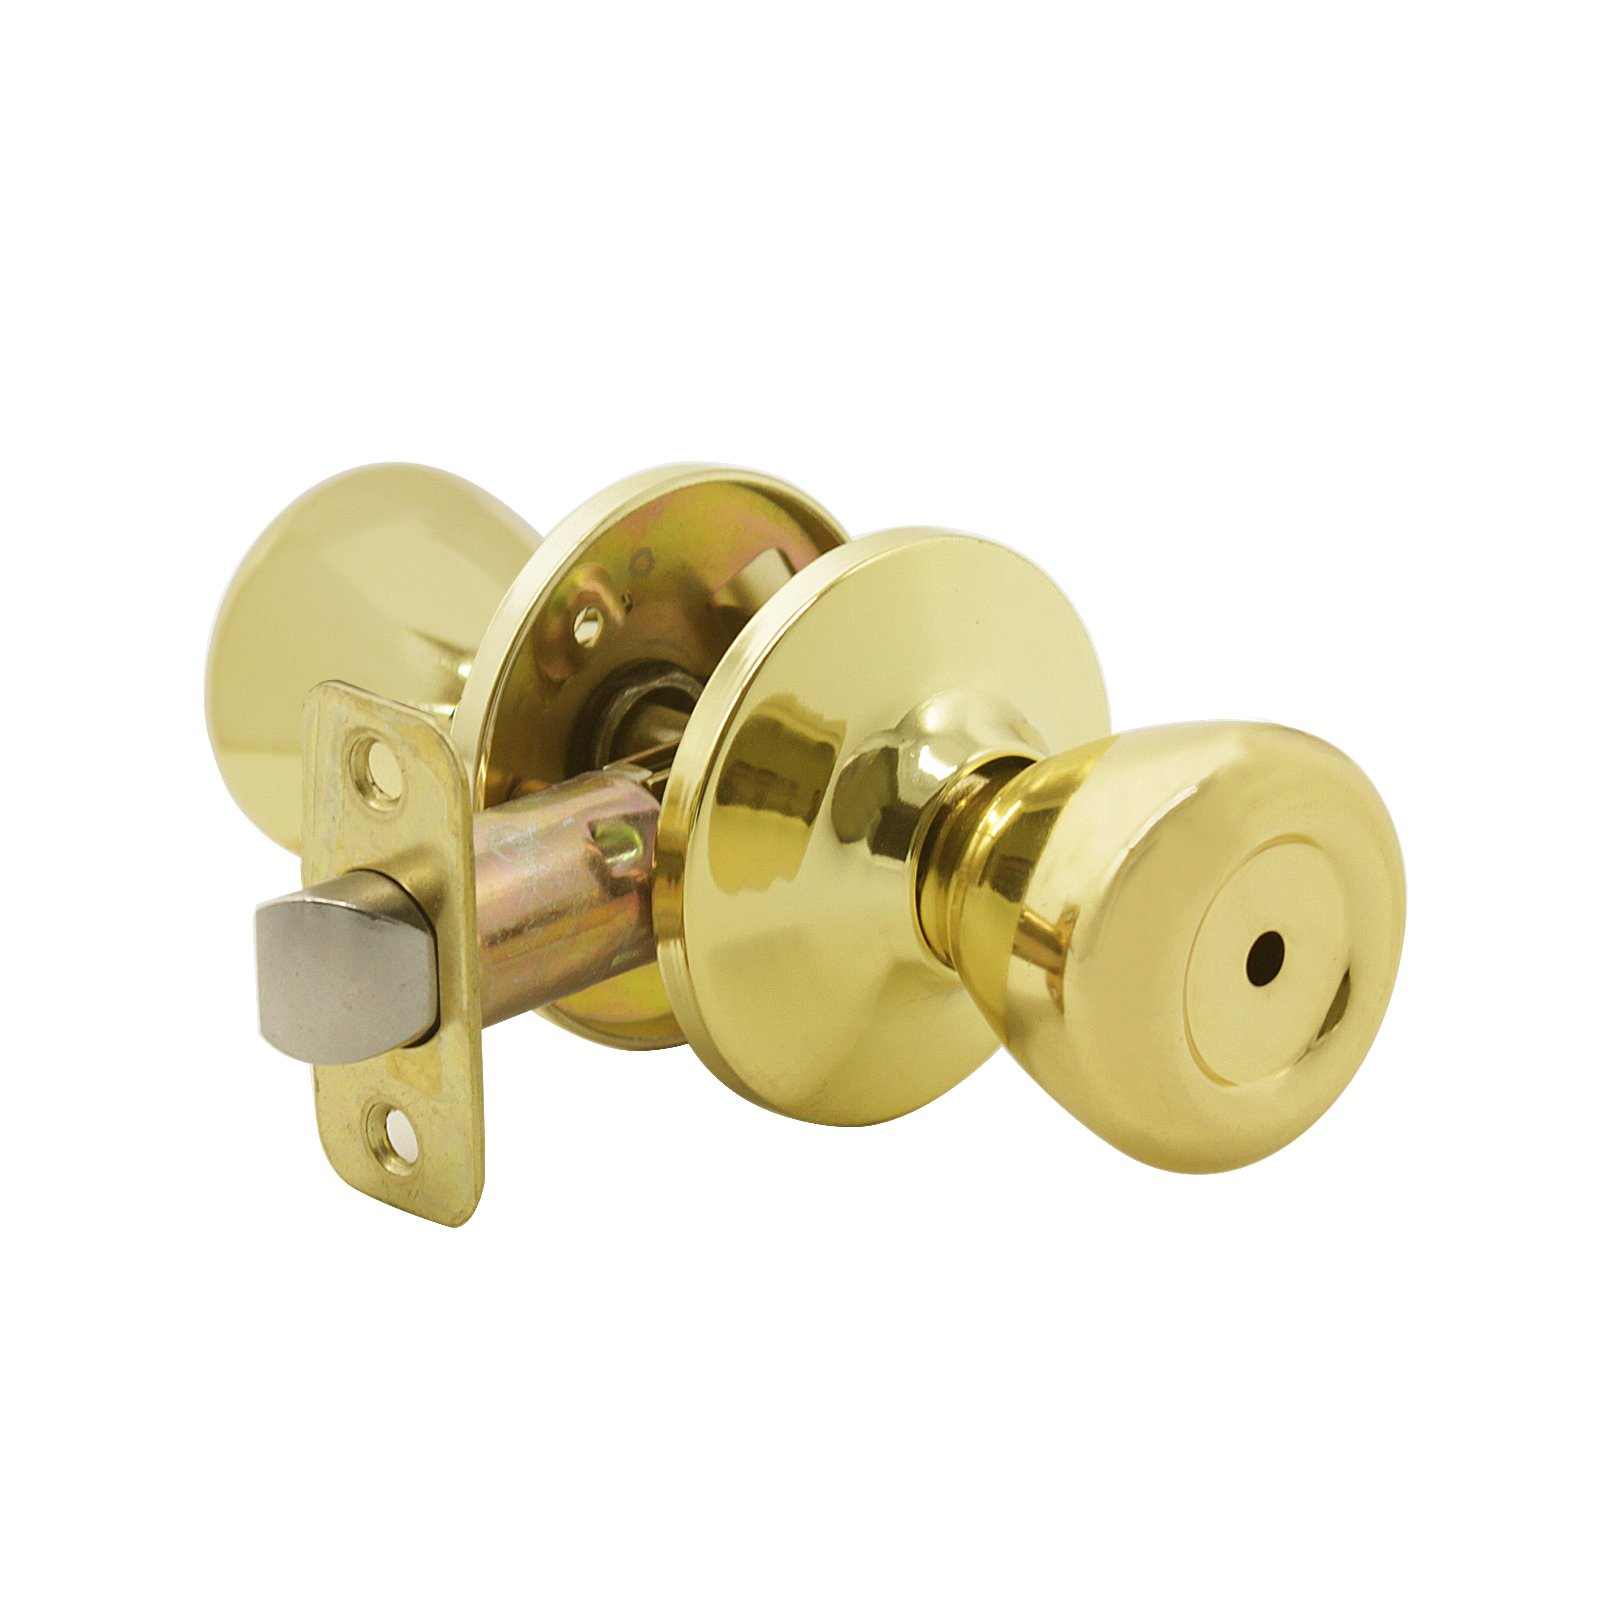 Privacy Keyless Door Knobs Interior Bathroom Door Lockset, Zinc Alloy,Polished Brass